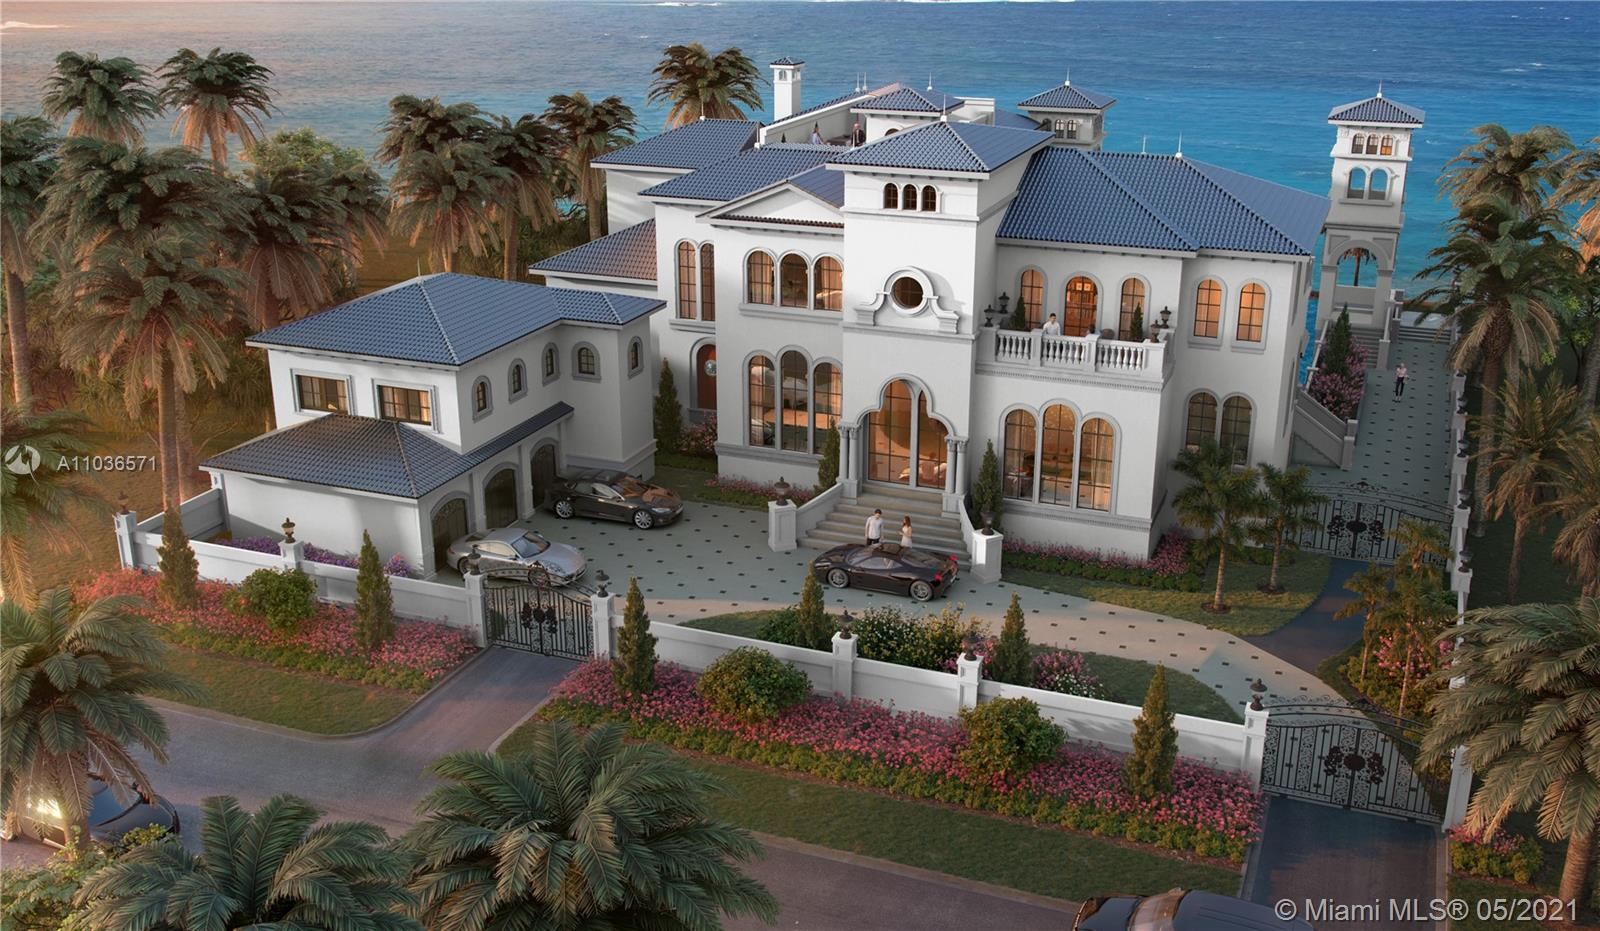 Designed by award-winning designer and builder Andrea D'Alessio. This 11,000± sq. ft. mansion with 10 beds/14 baths, is situated on an oversized 22,000± square foot lot. 125± linear feet of water frontage with new seawall and yacht-accommodating dock. 12-foot ceilings throughout with elevator access to a roof top deck and portico. Custom interior finishes include (1) imported Italian marble floors; (2) hand-crafted solid wood cabinets imported from Milan, Italy; (3) a spacious home gym; (4) a state-of-the-art media room; and (5) a Crestron home automation system (6) 3-car garage (7) 2 bed/2 bath guesthouse.  Completion Date:  8/1/2021